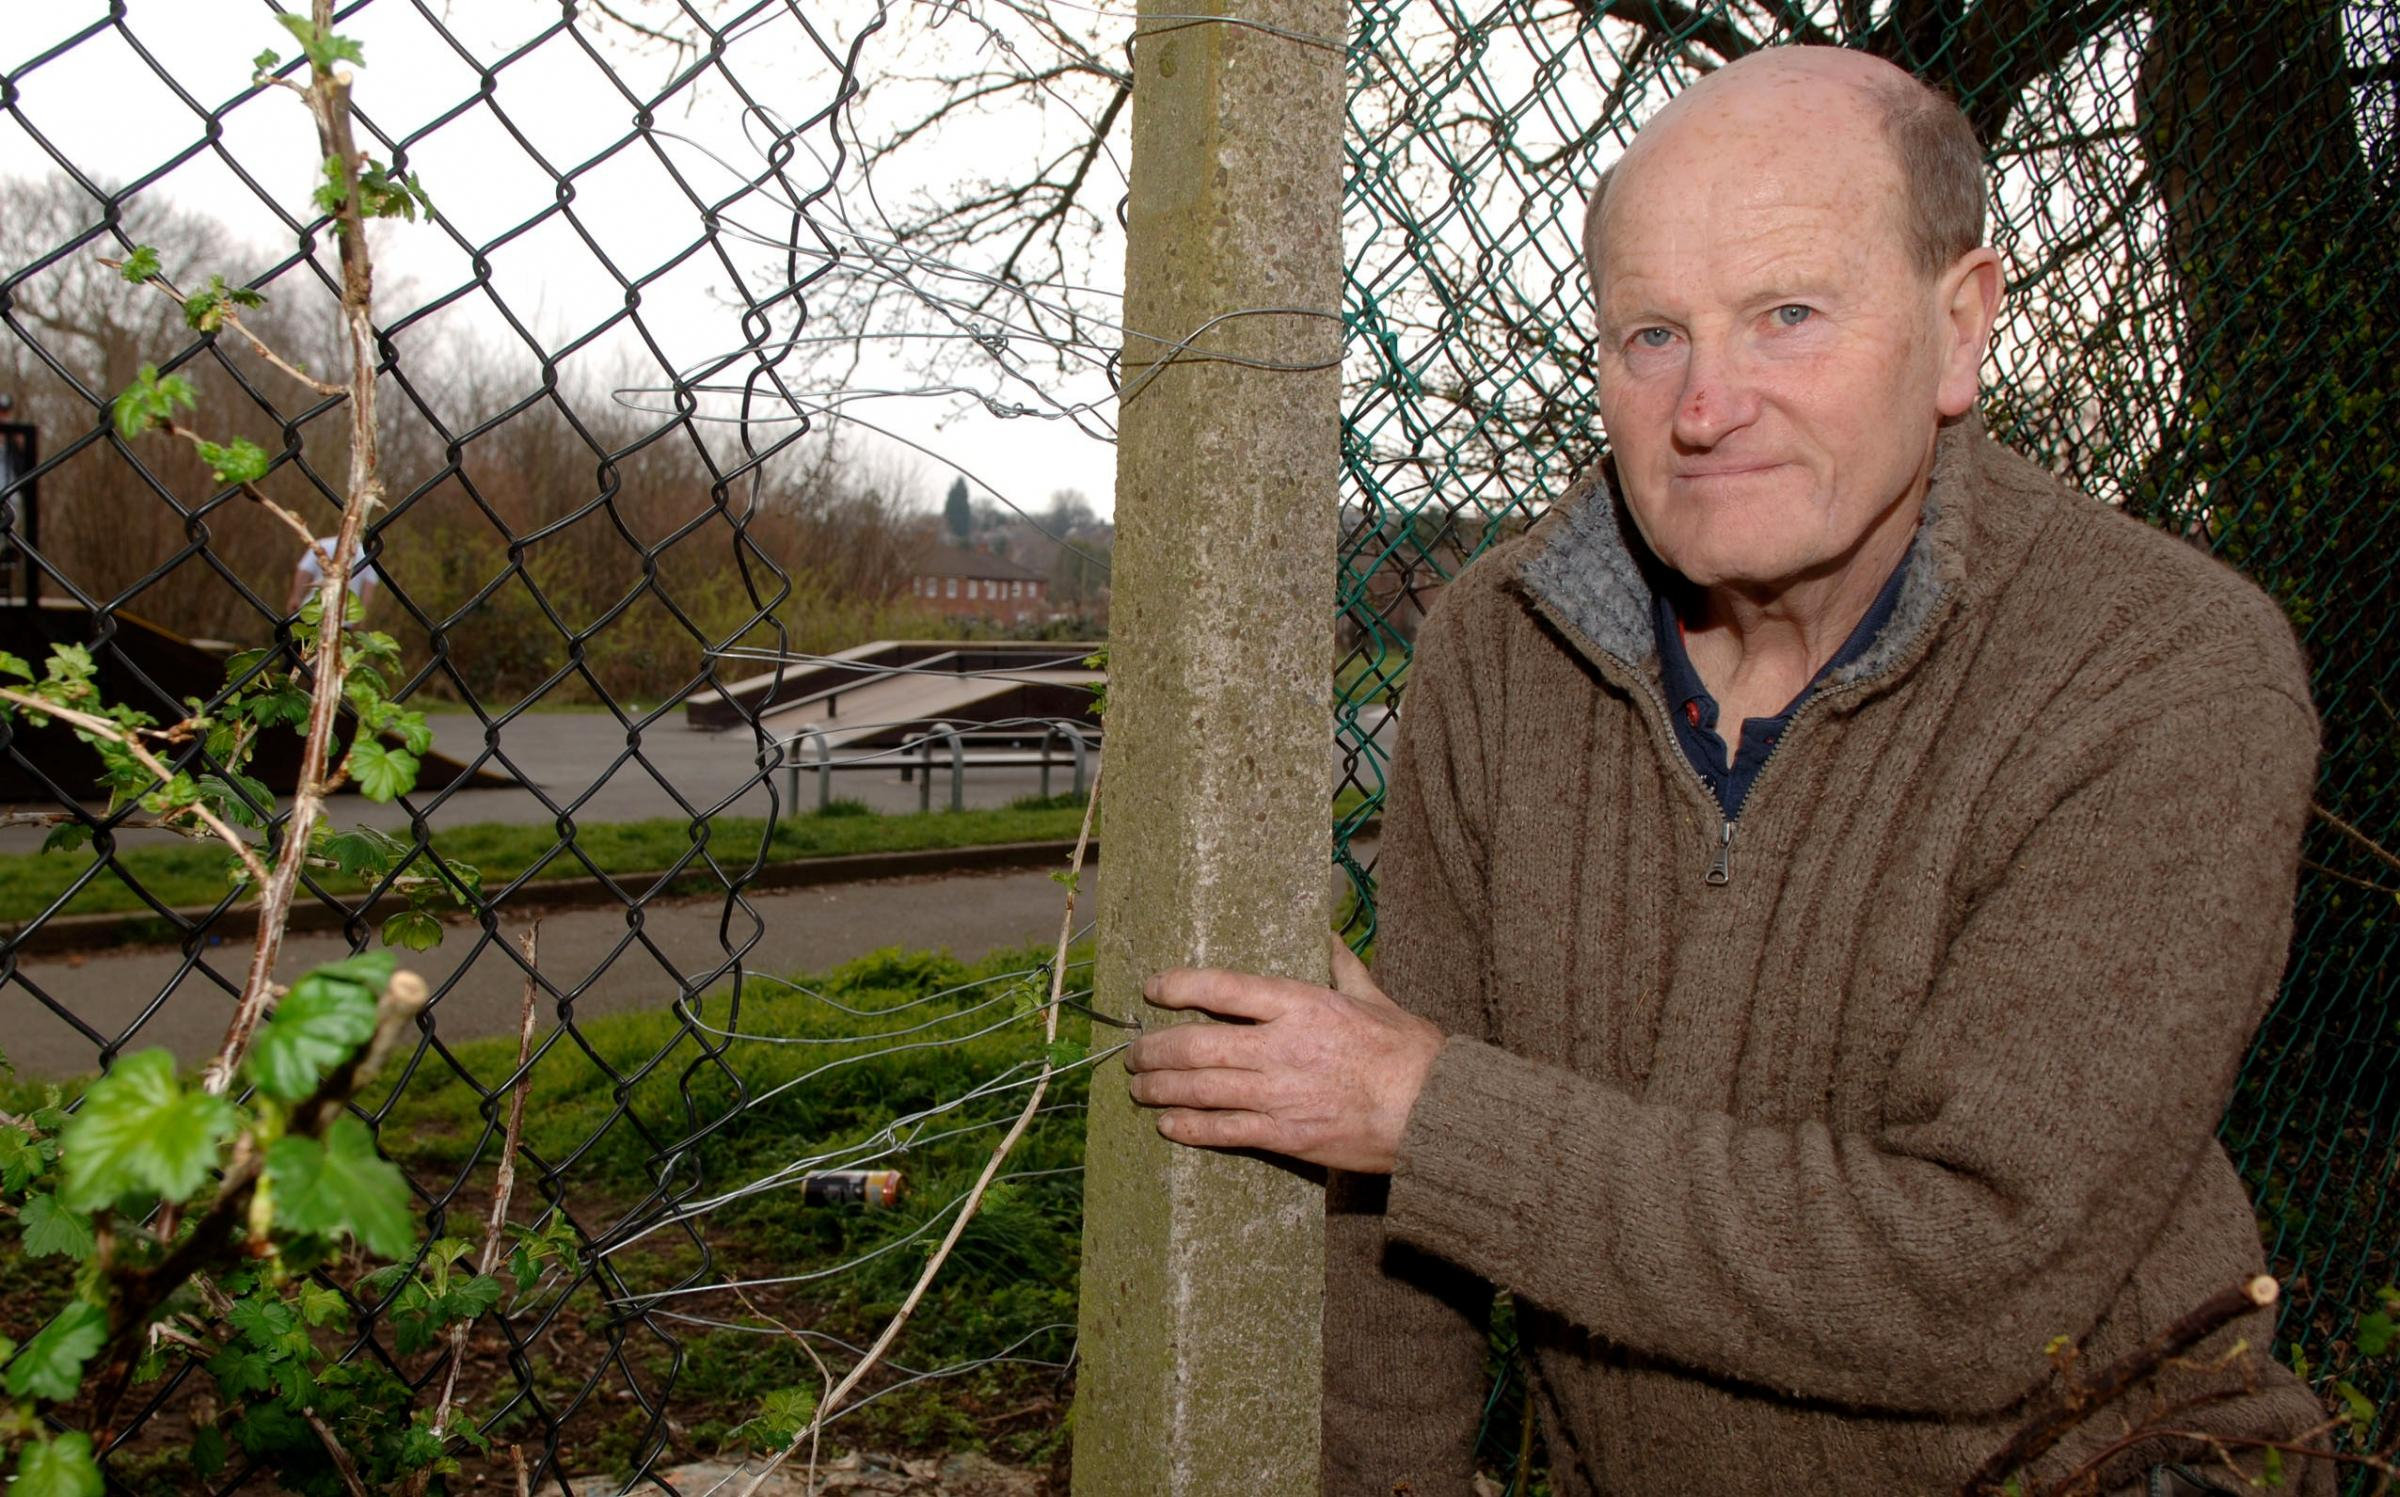 Allotment chairman Dave Adams with the broken fence.